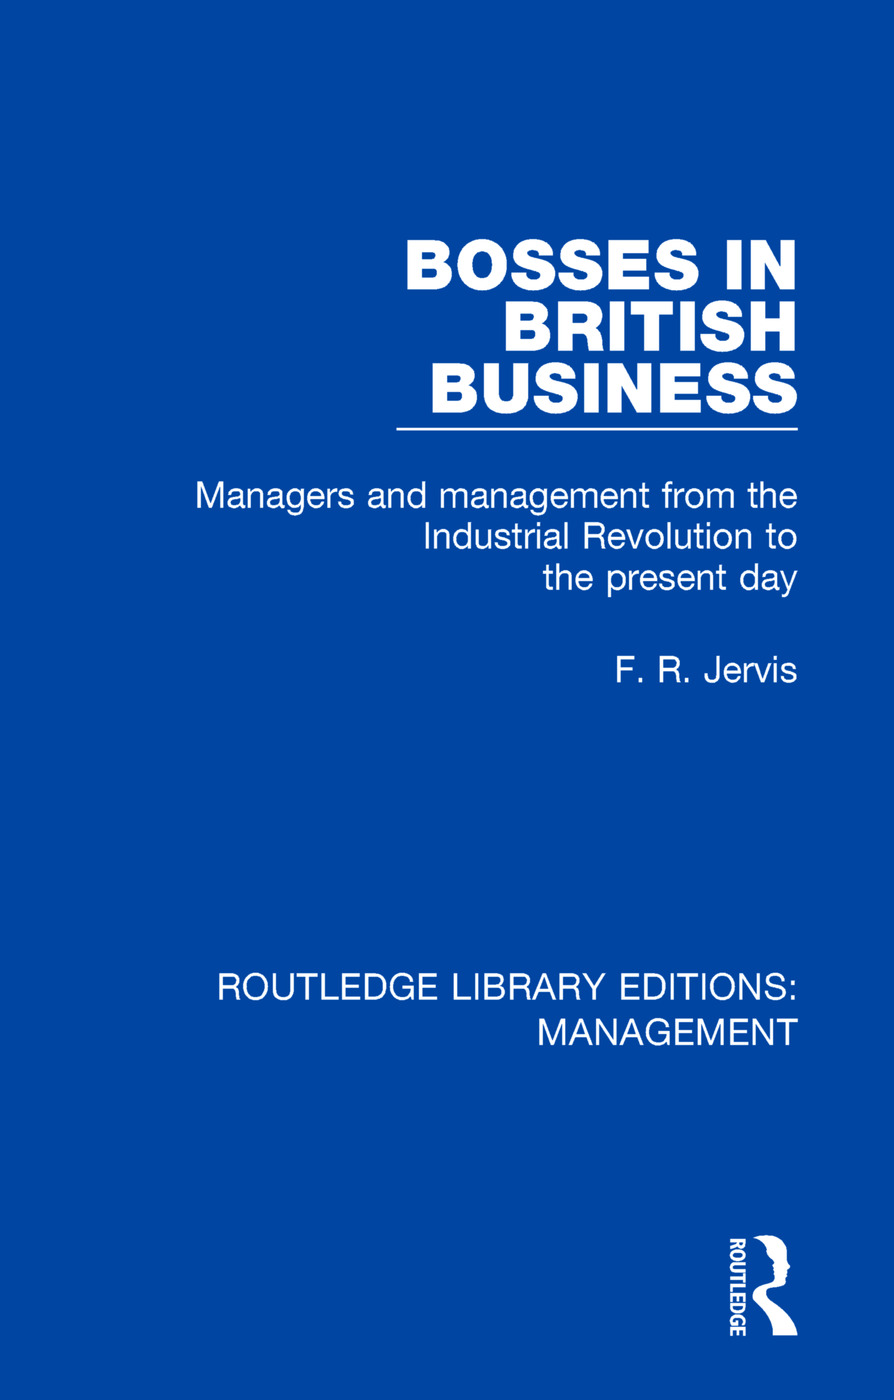 Bosses in British Business: Managers and Management from the Industrial Revolution to the Present Day book cover